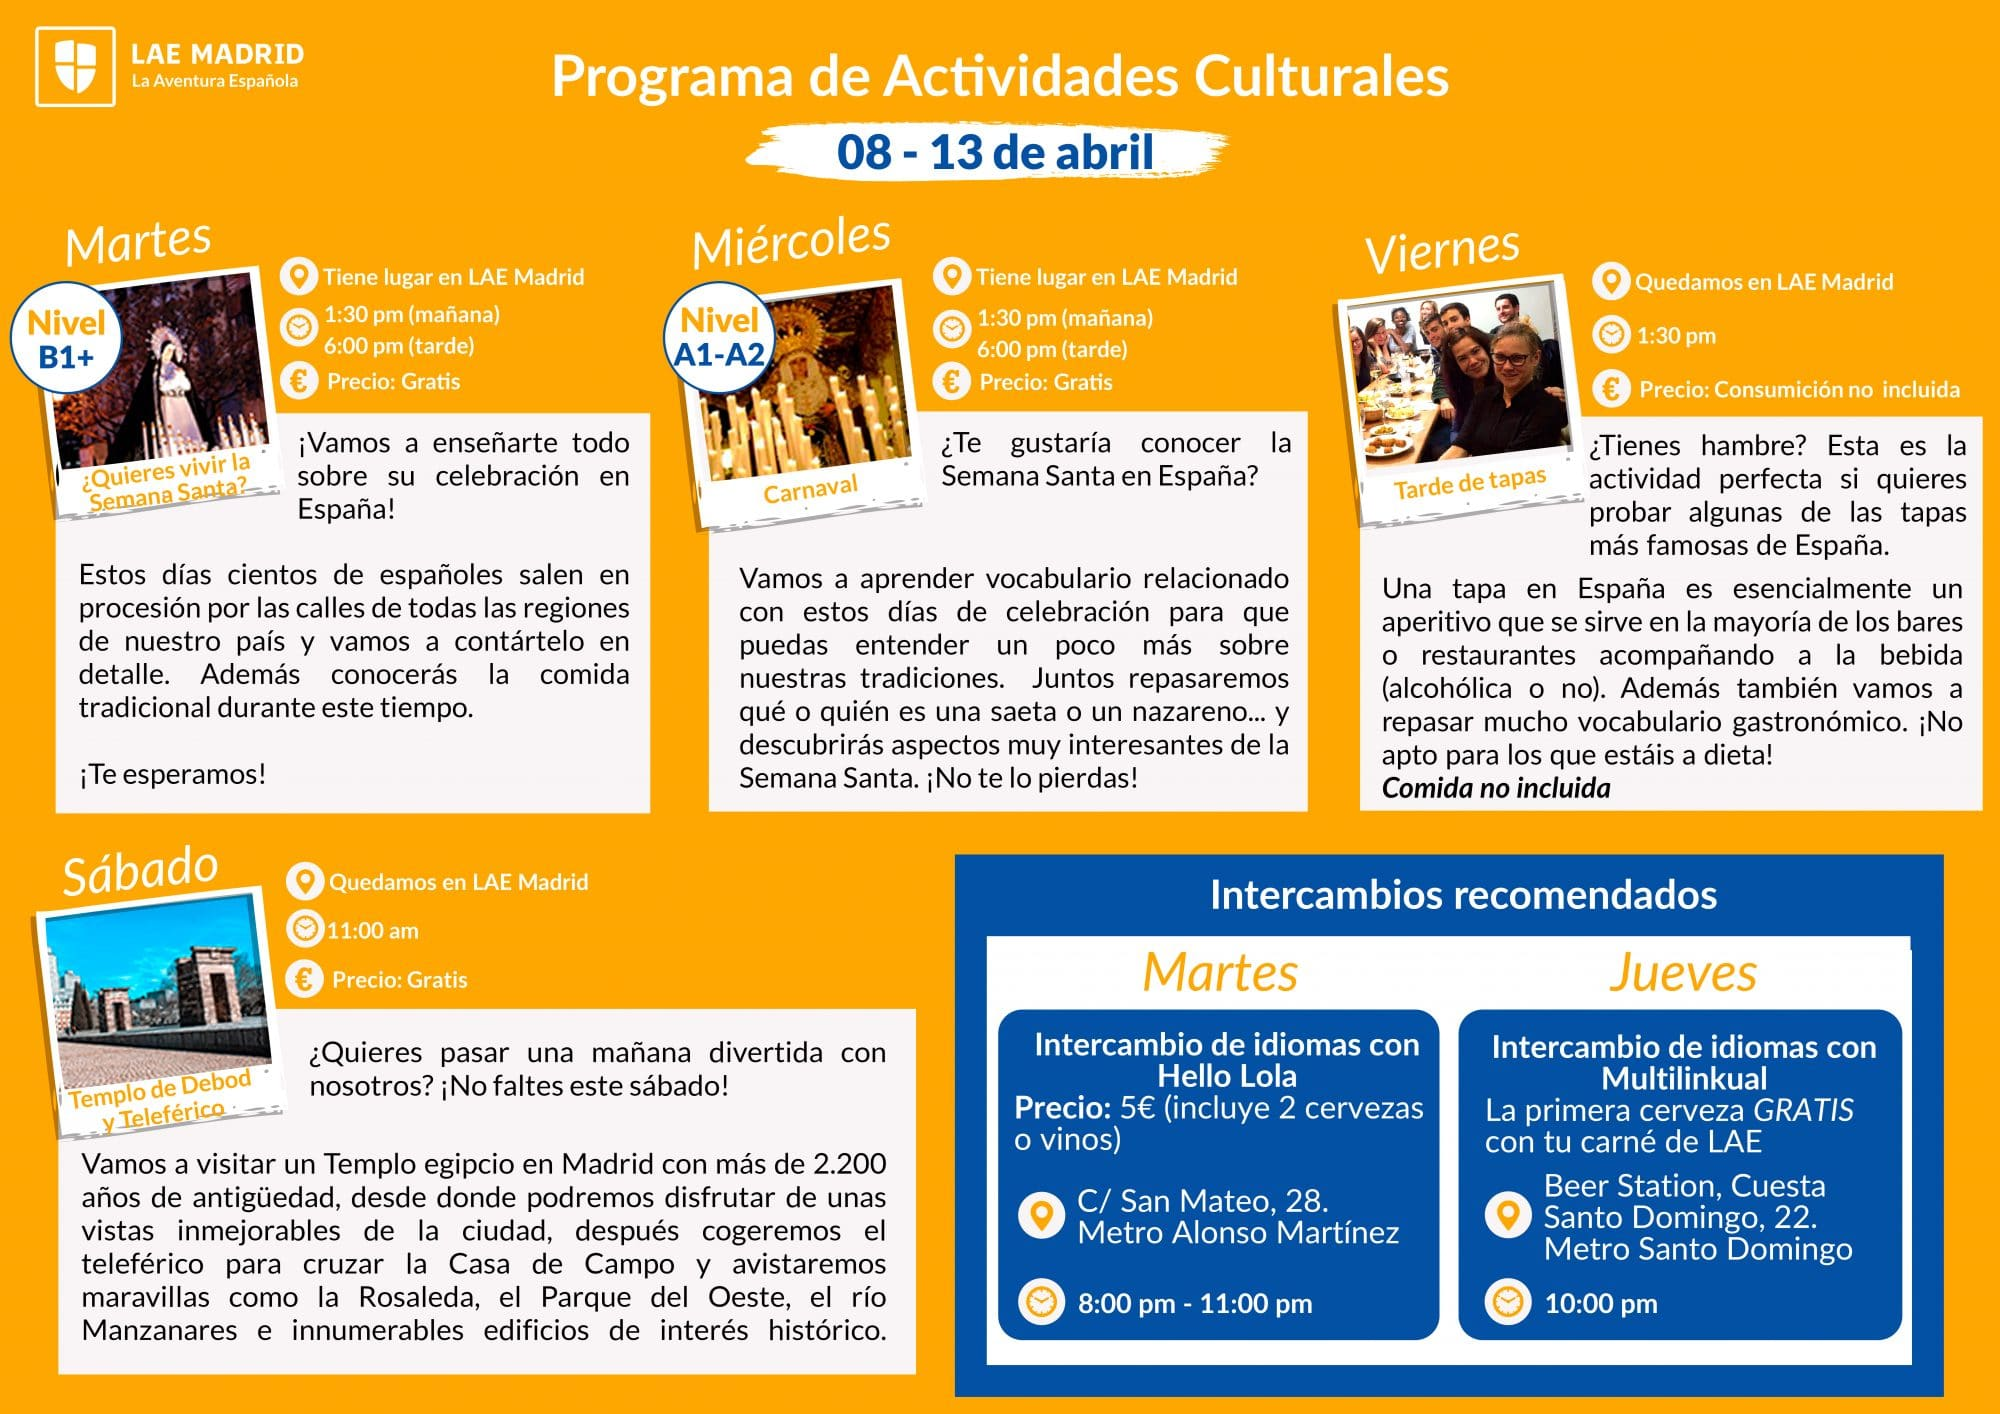 LAE Madrid Cultural activities 8-13 April 2019